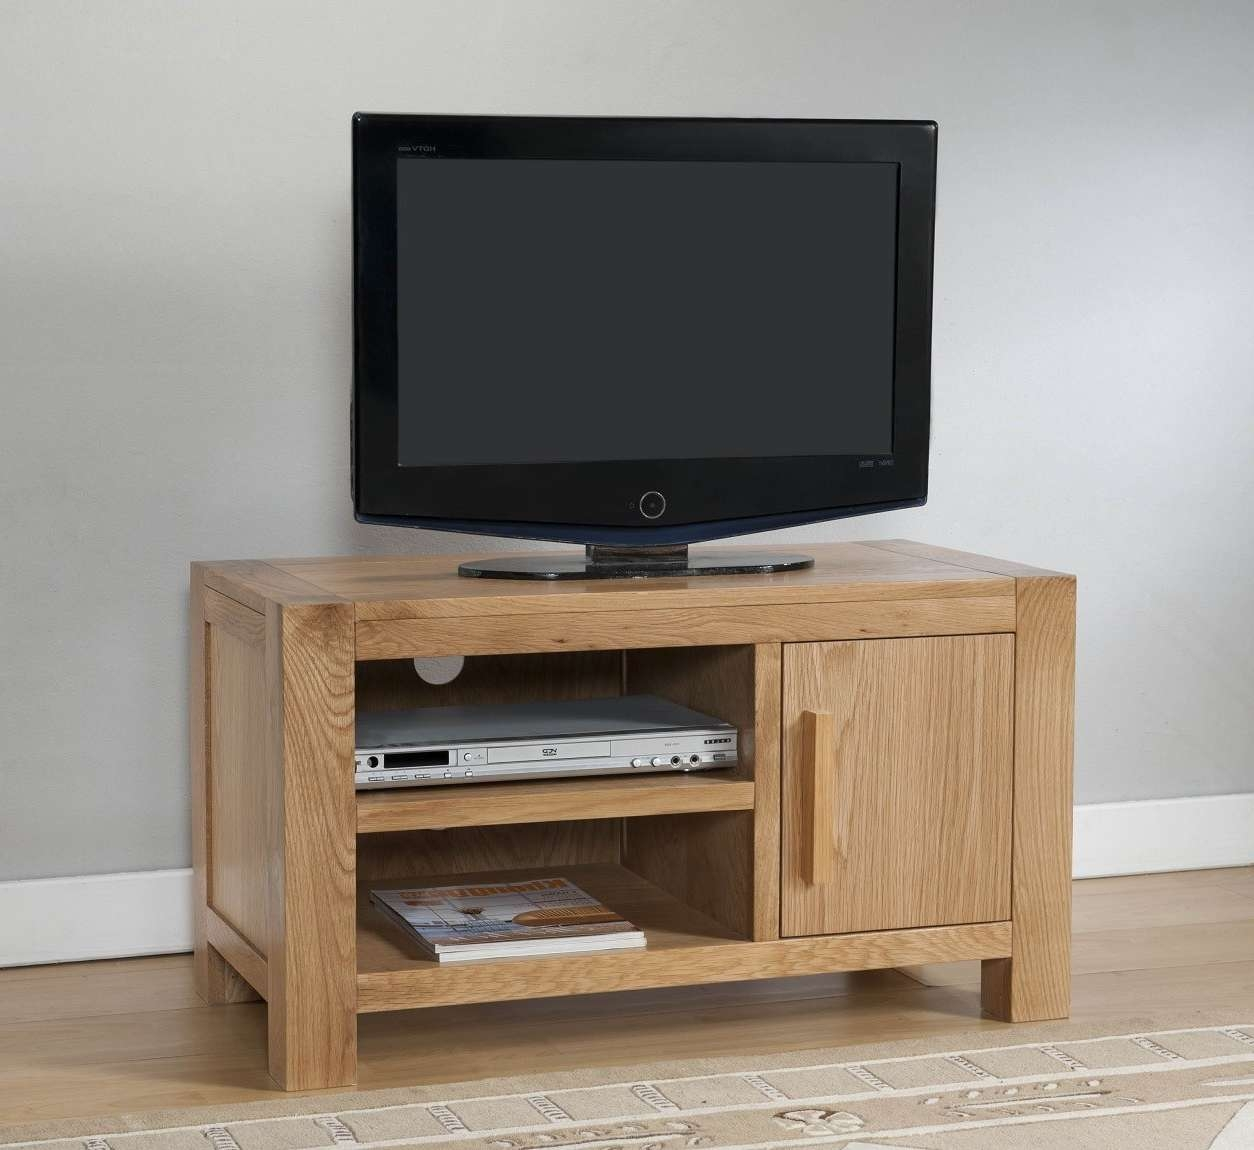 Aylesbury Contemporary Light Oak Small Tv Unit | Oak Furniture Uk Intended For Contemporary Oak Tv Cabinets (View 3 of 20)